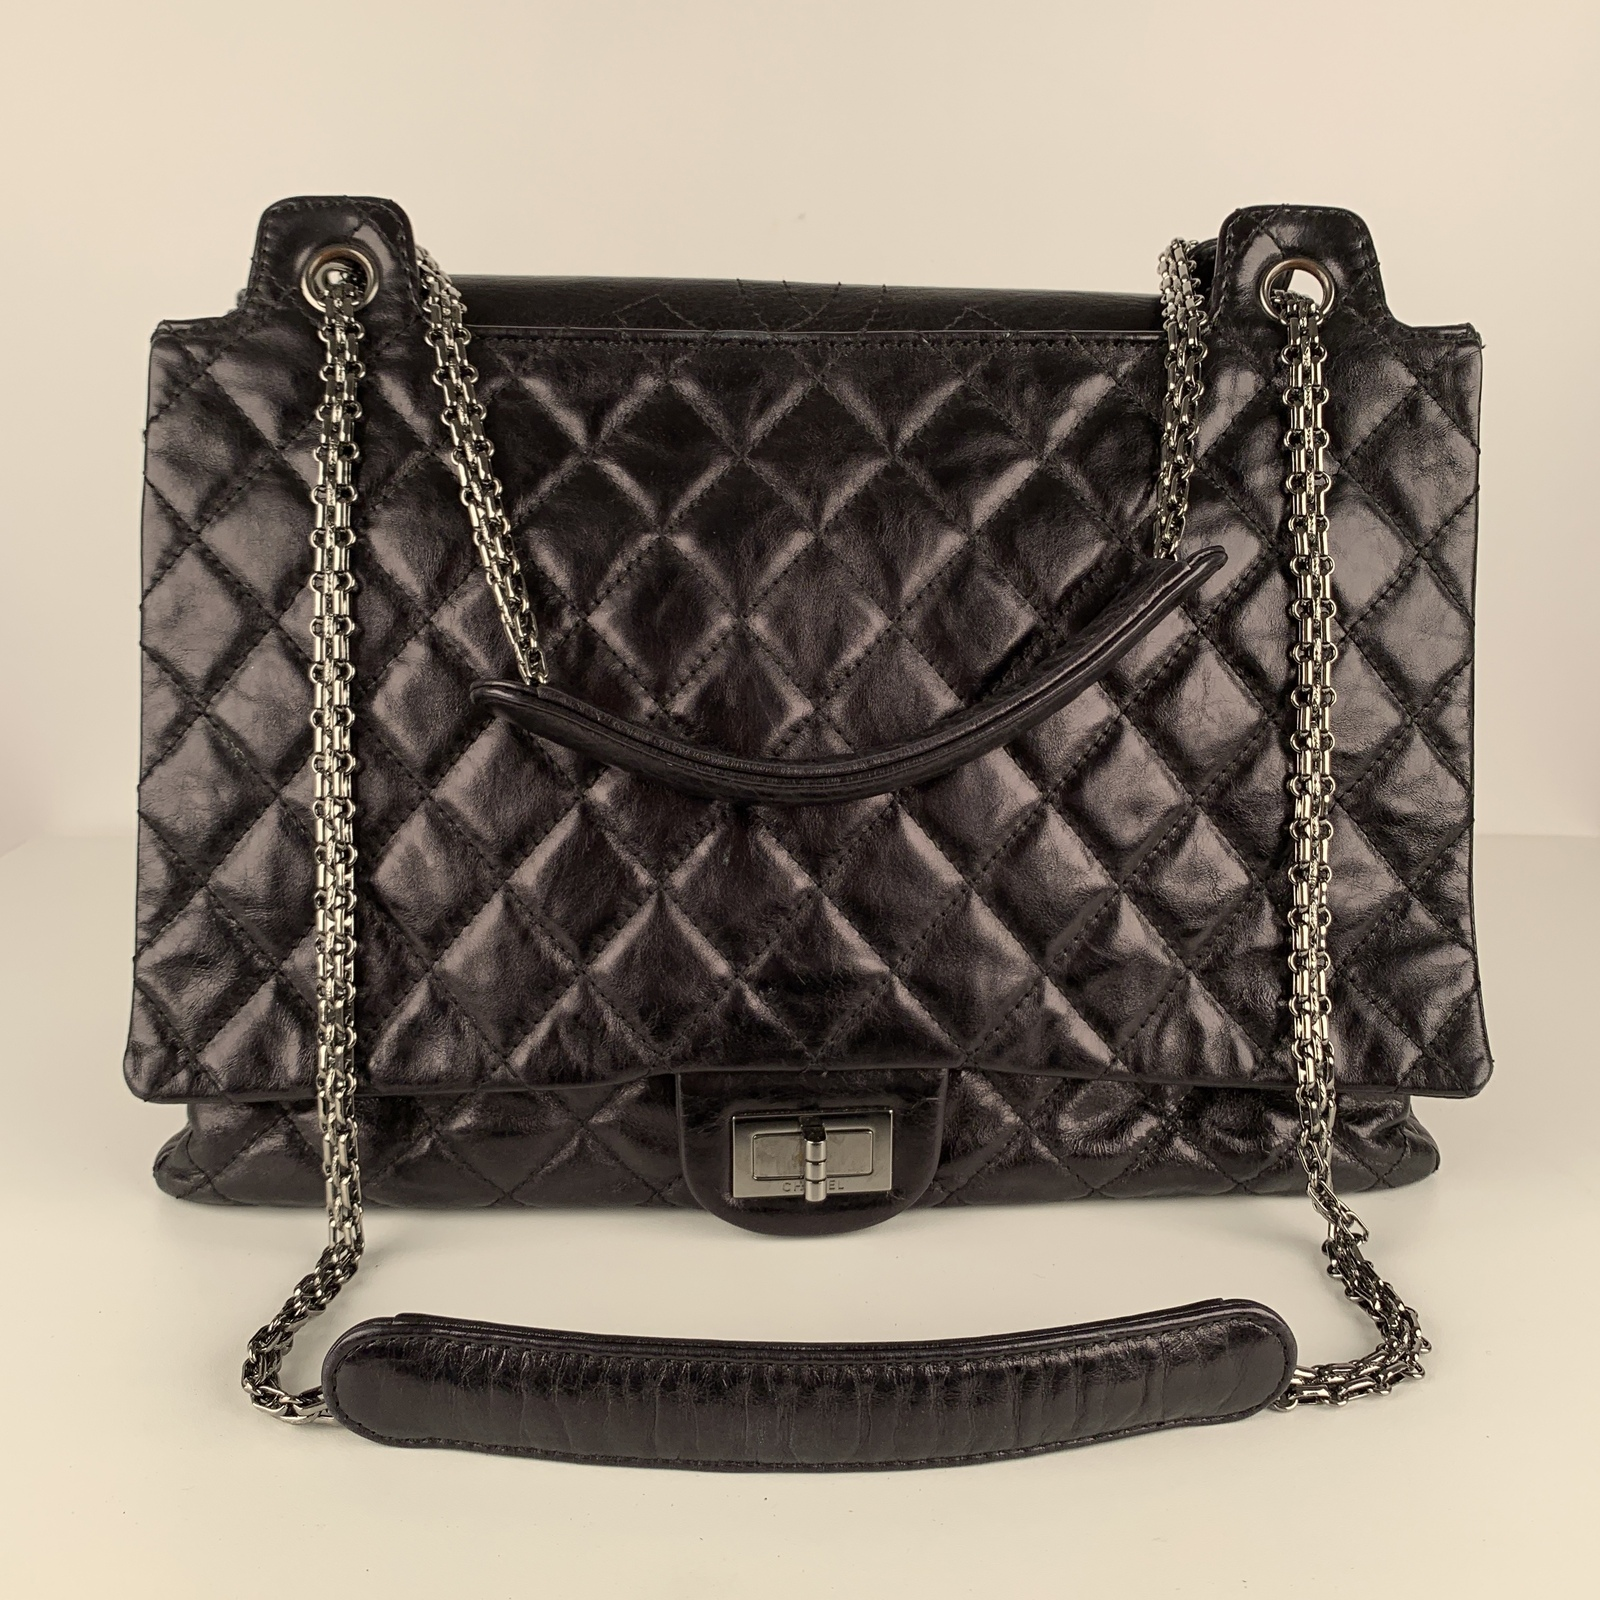 Authentic Chanel Black Quilted Leather Large Reissue 2.55 Accordion Flap Bag image 7